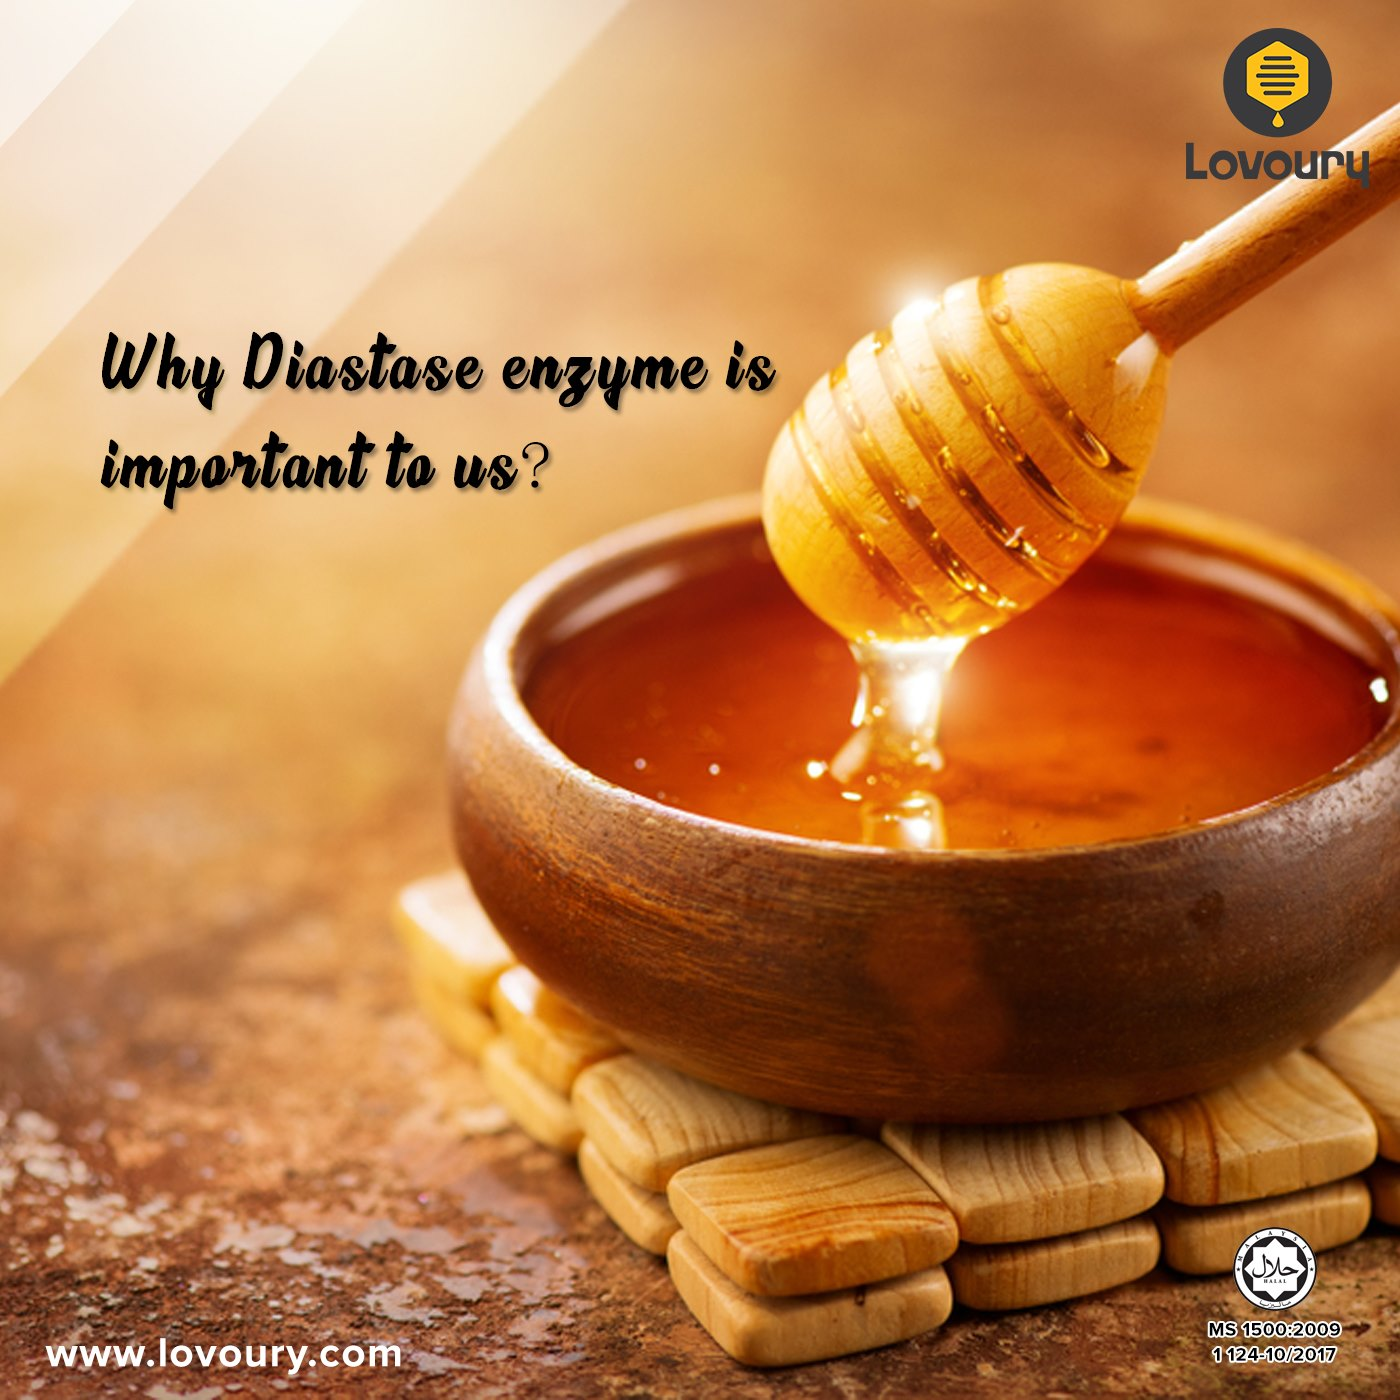 Why Diastase Enzyme is important to us?